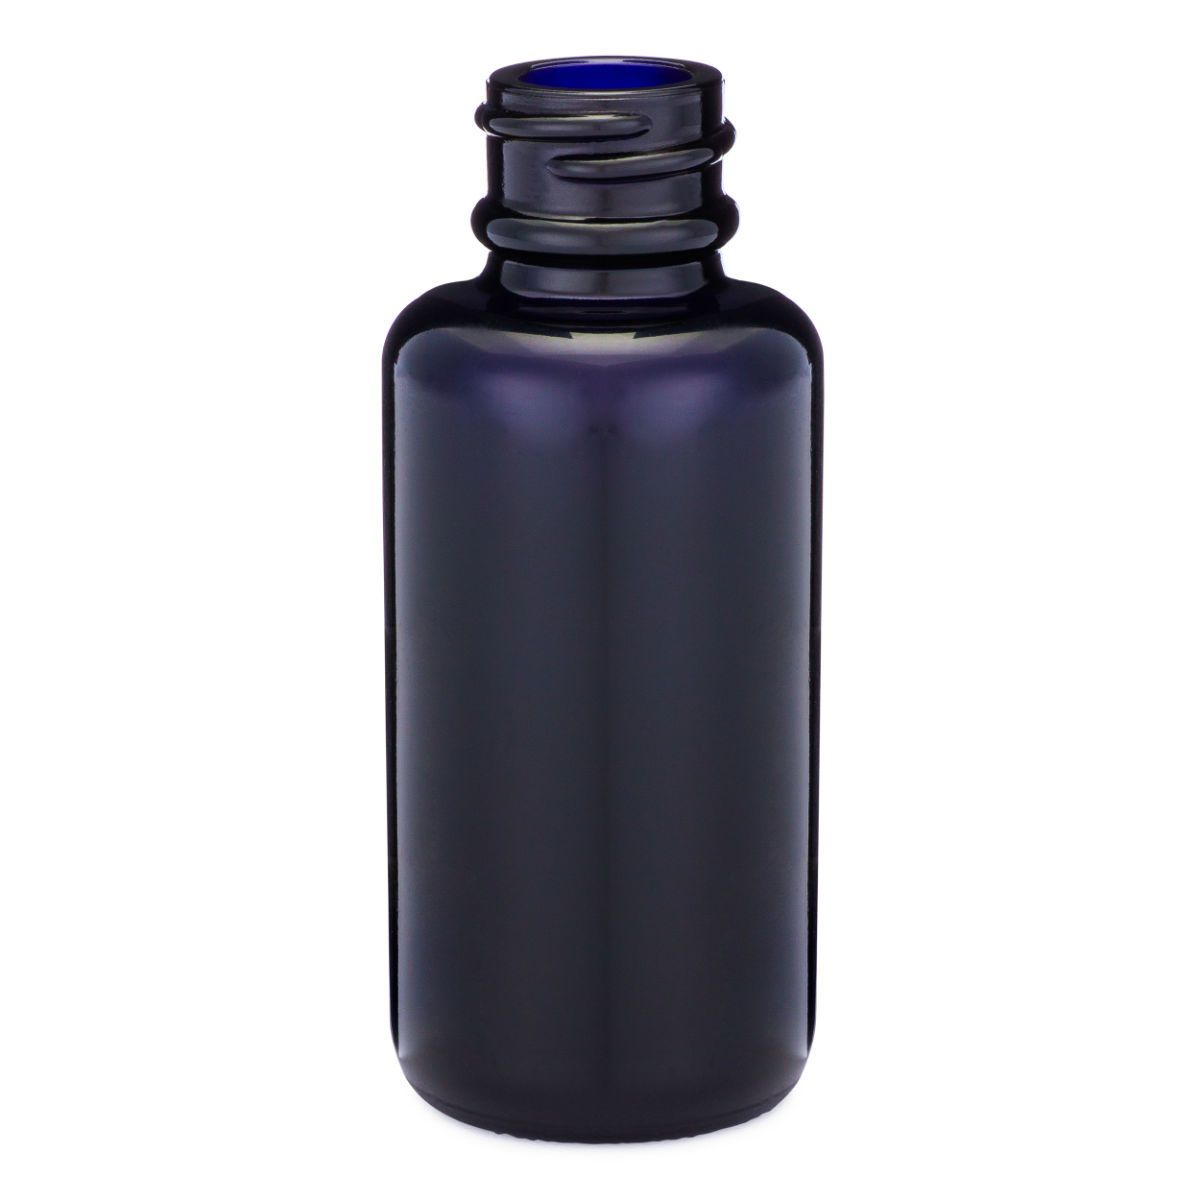 1 Oz Black Violet Glass Boston Round Bottles Bottle Glass Bottles Glass